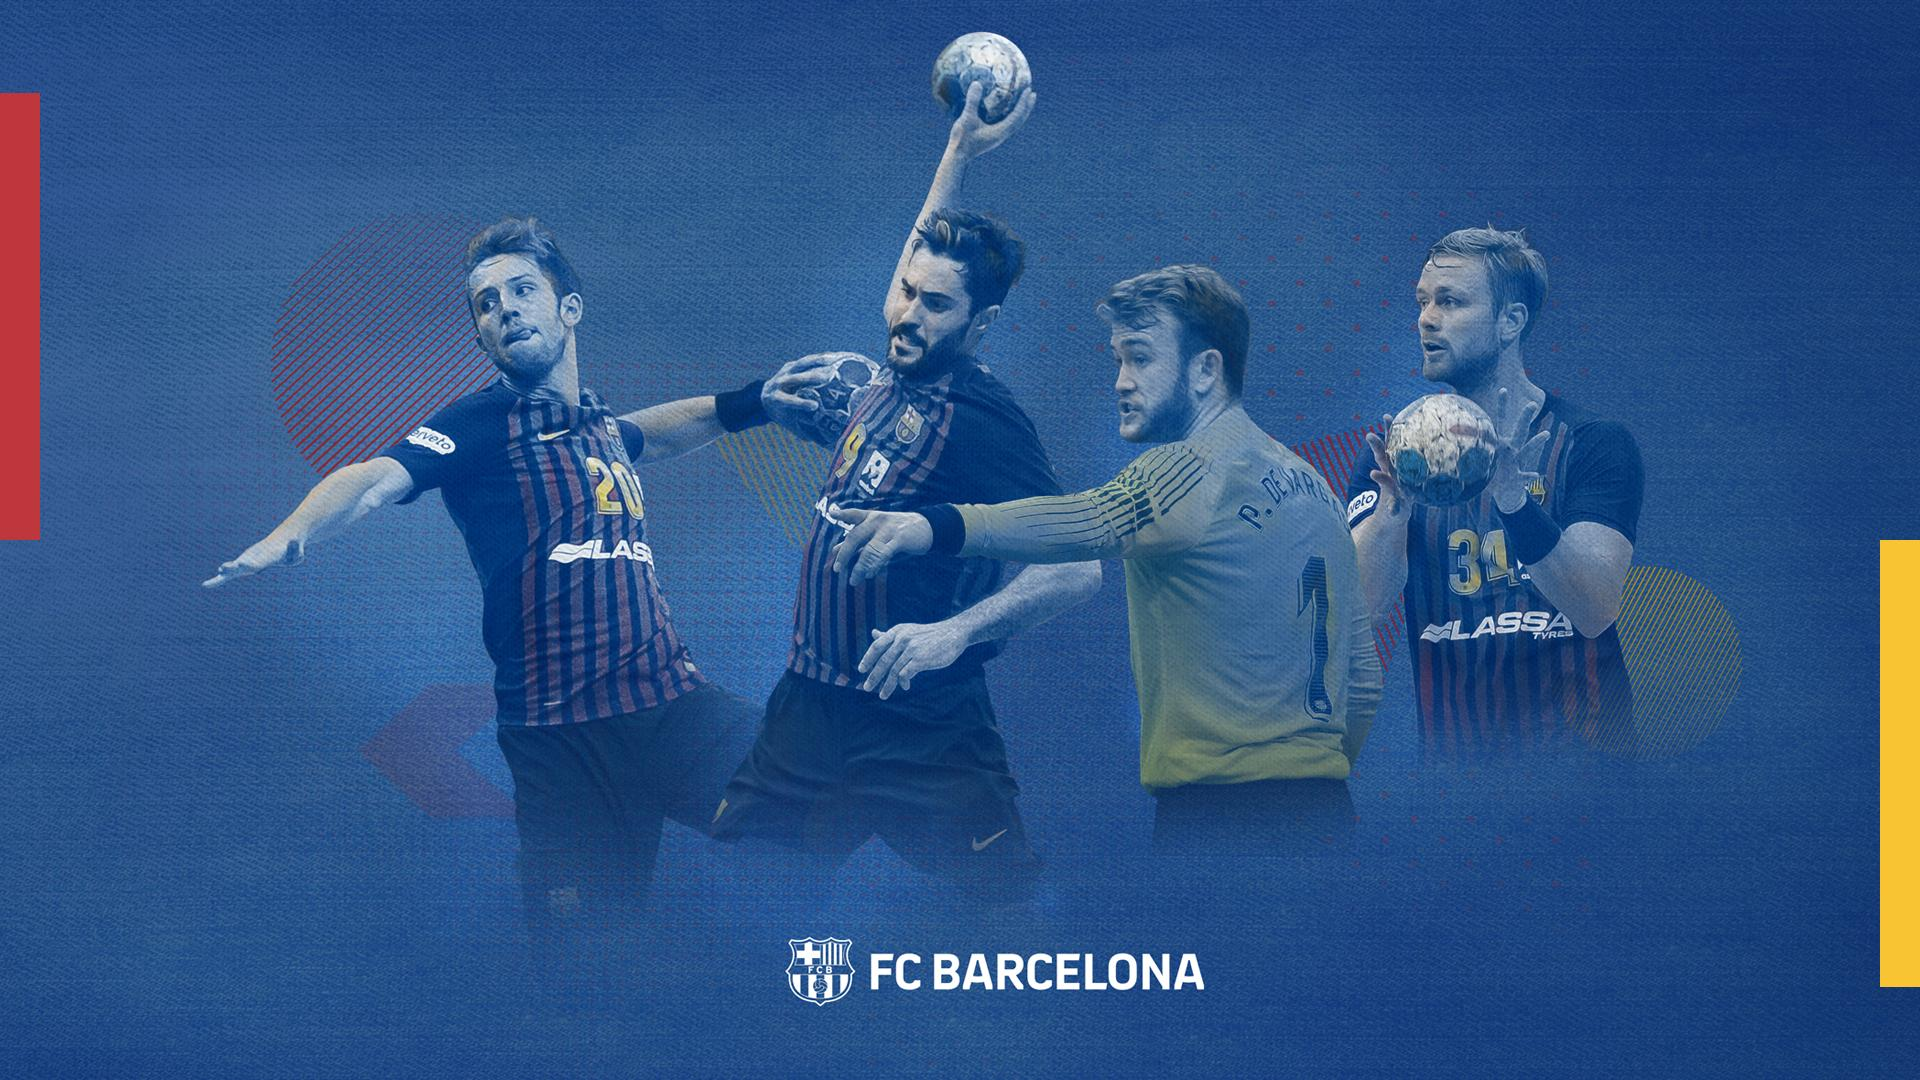 Barça Fans Wallpapers Canal Oficial Fc Barcelona